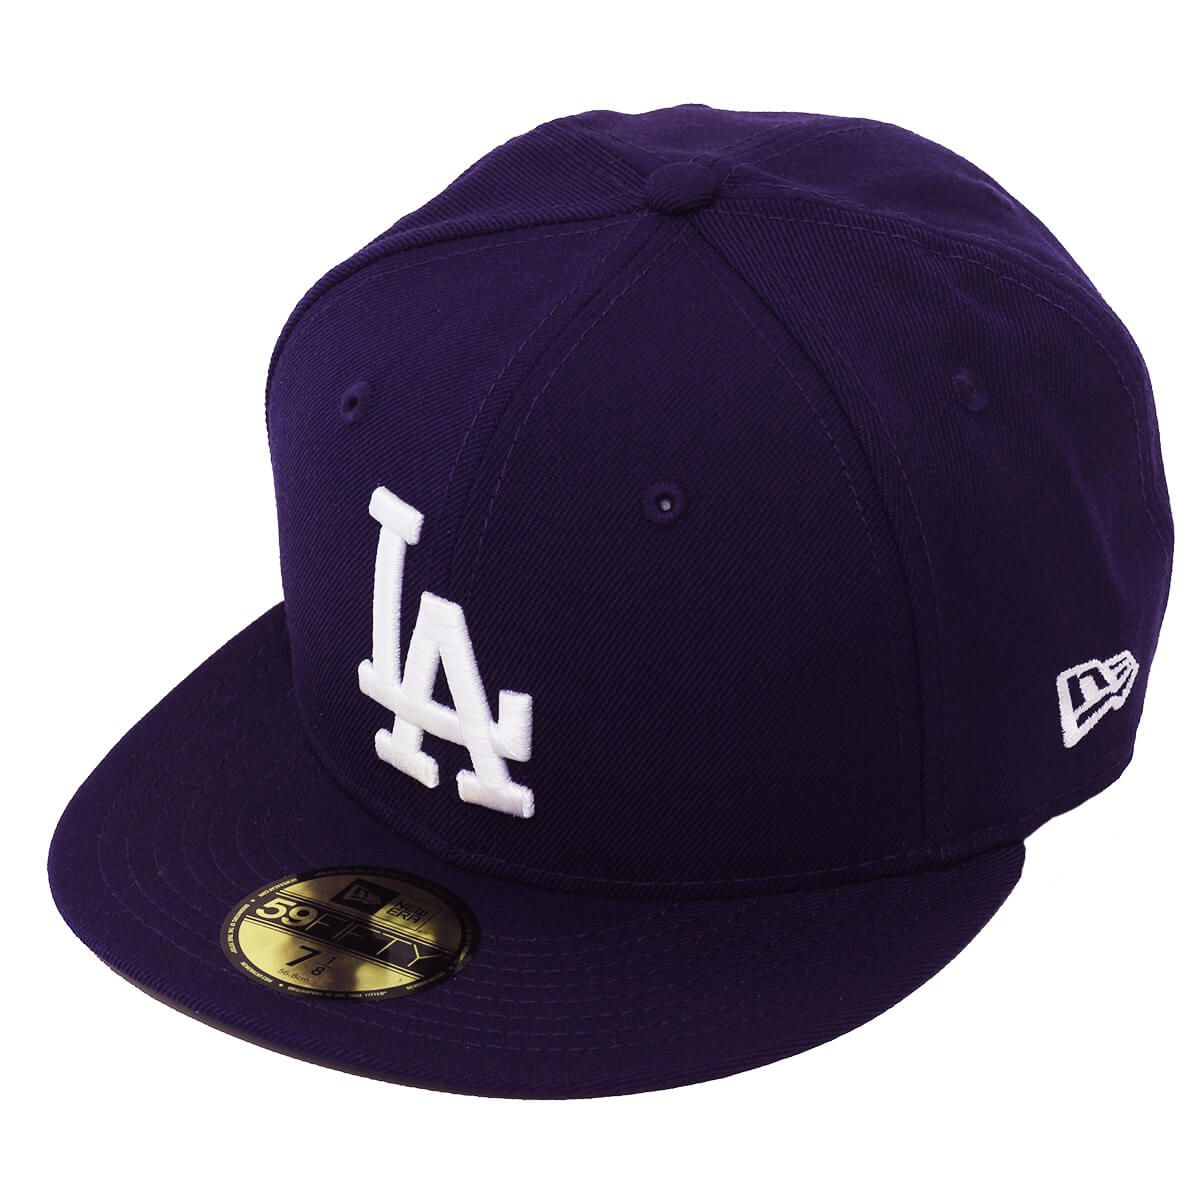 Boné New Era Aba Reta 5950 MLB Los Angeles Basic Colors Roxo